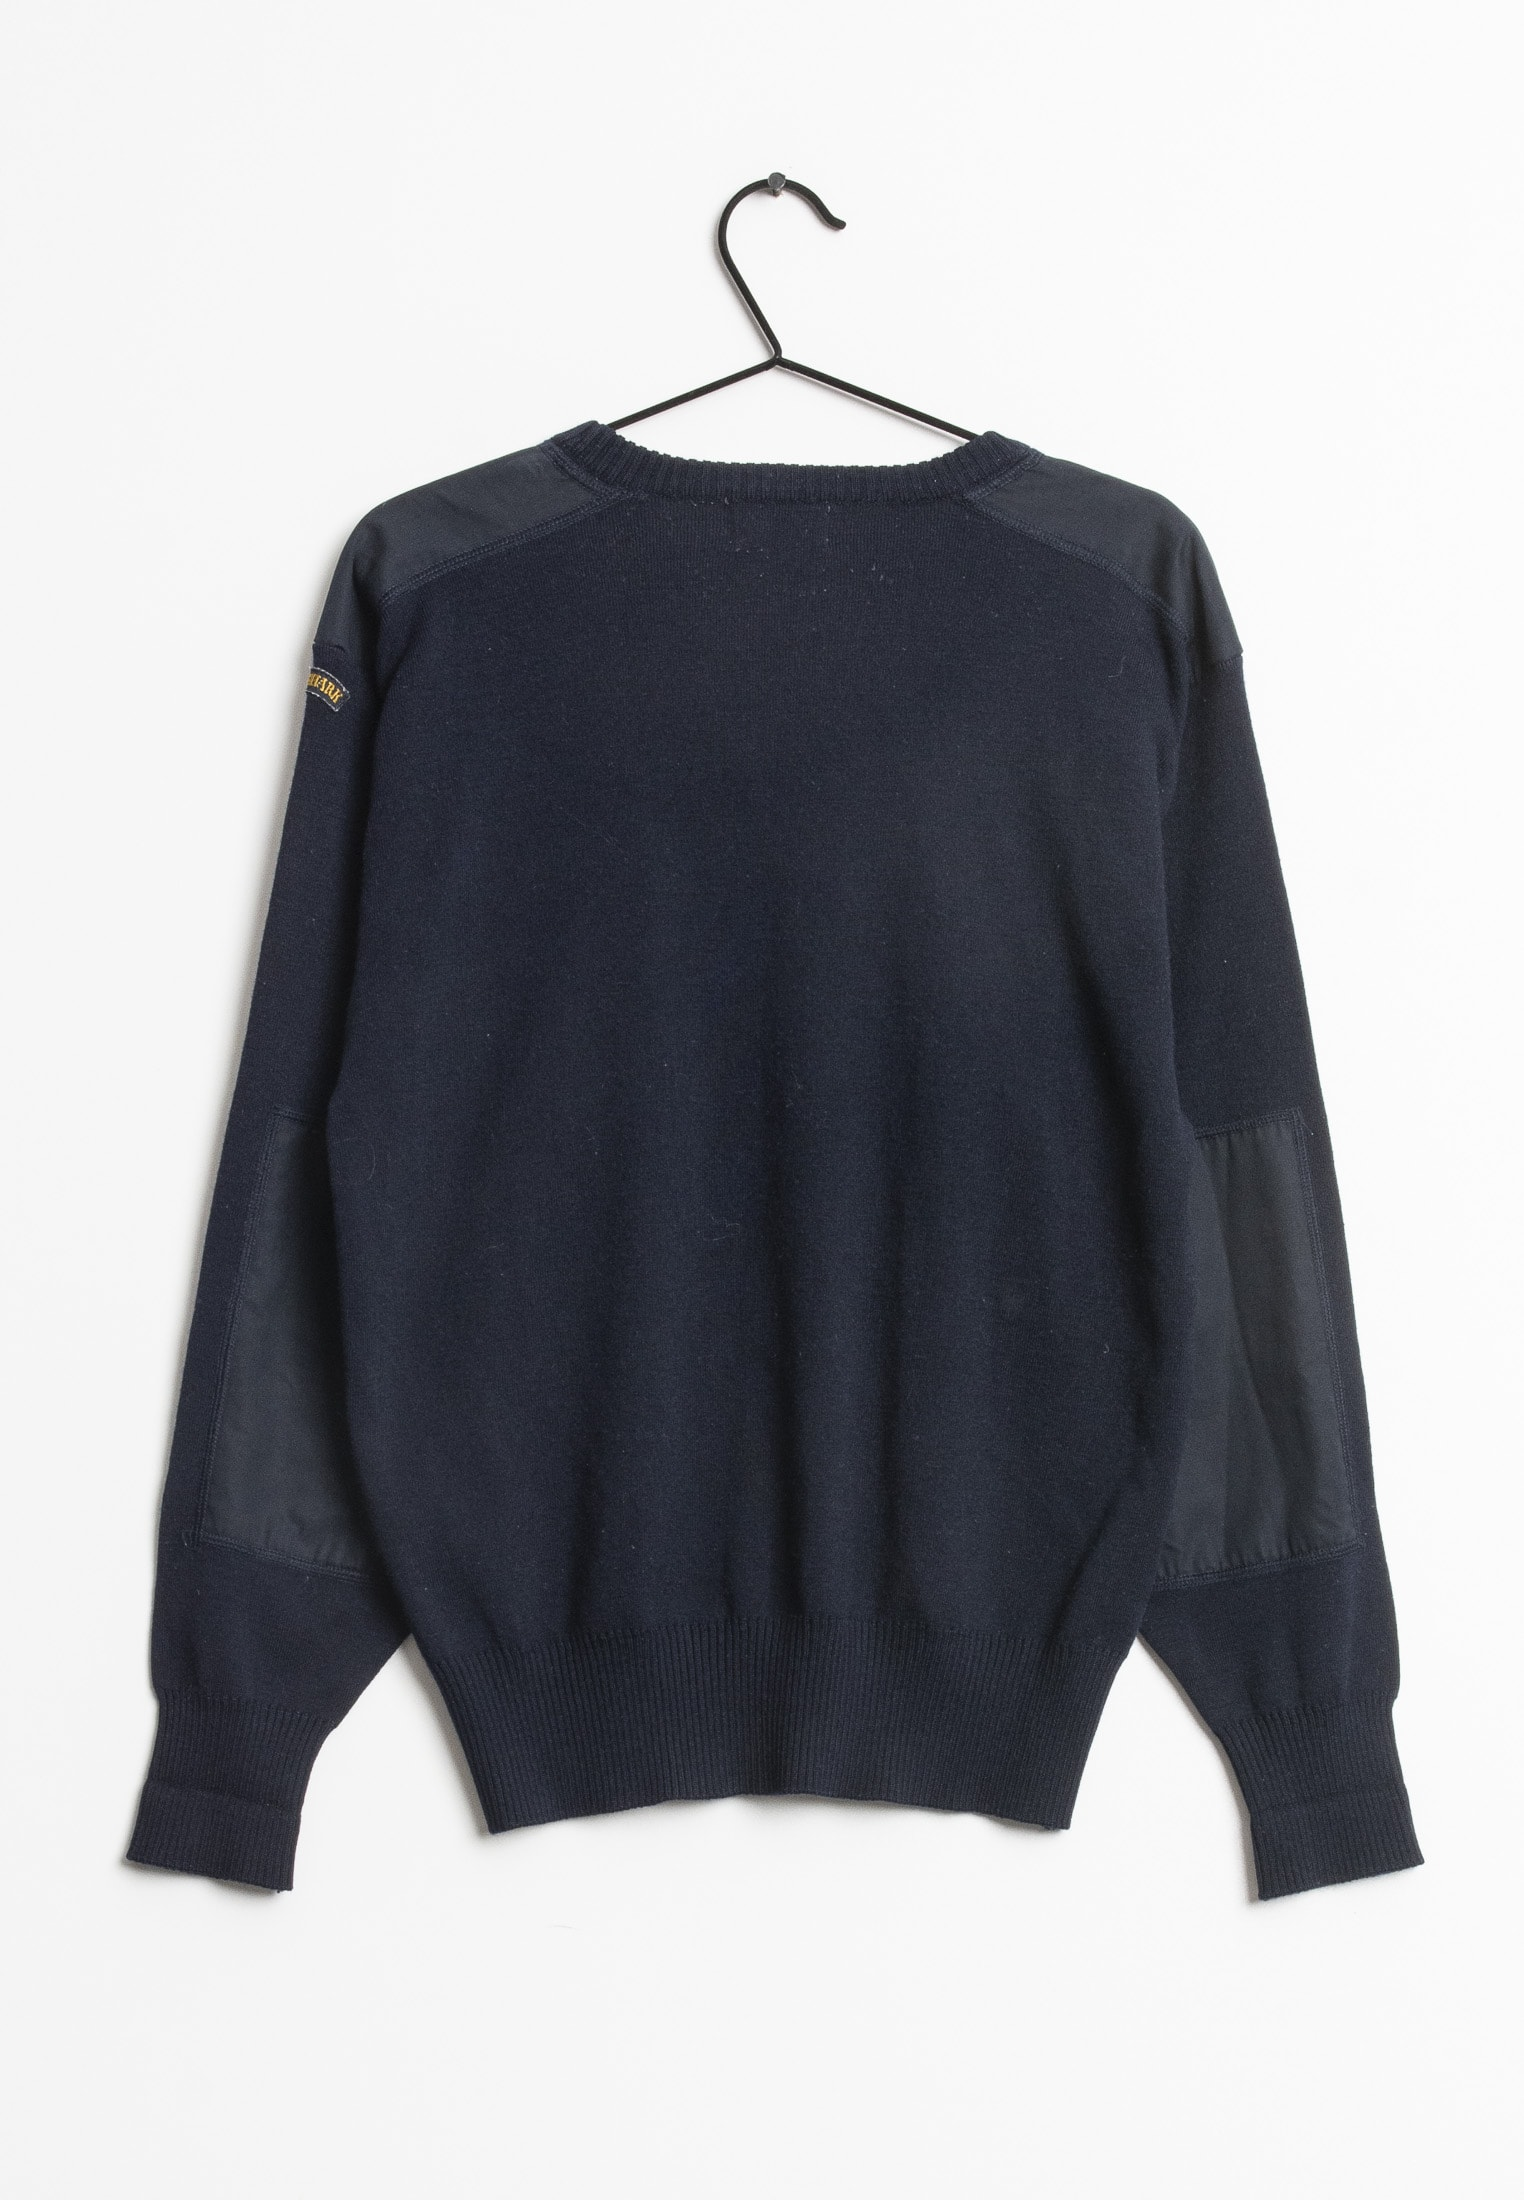 Paul & Shark Strickpullover Blau Gr.S